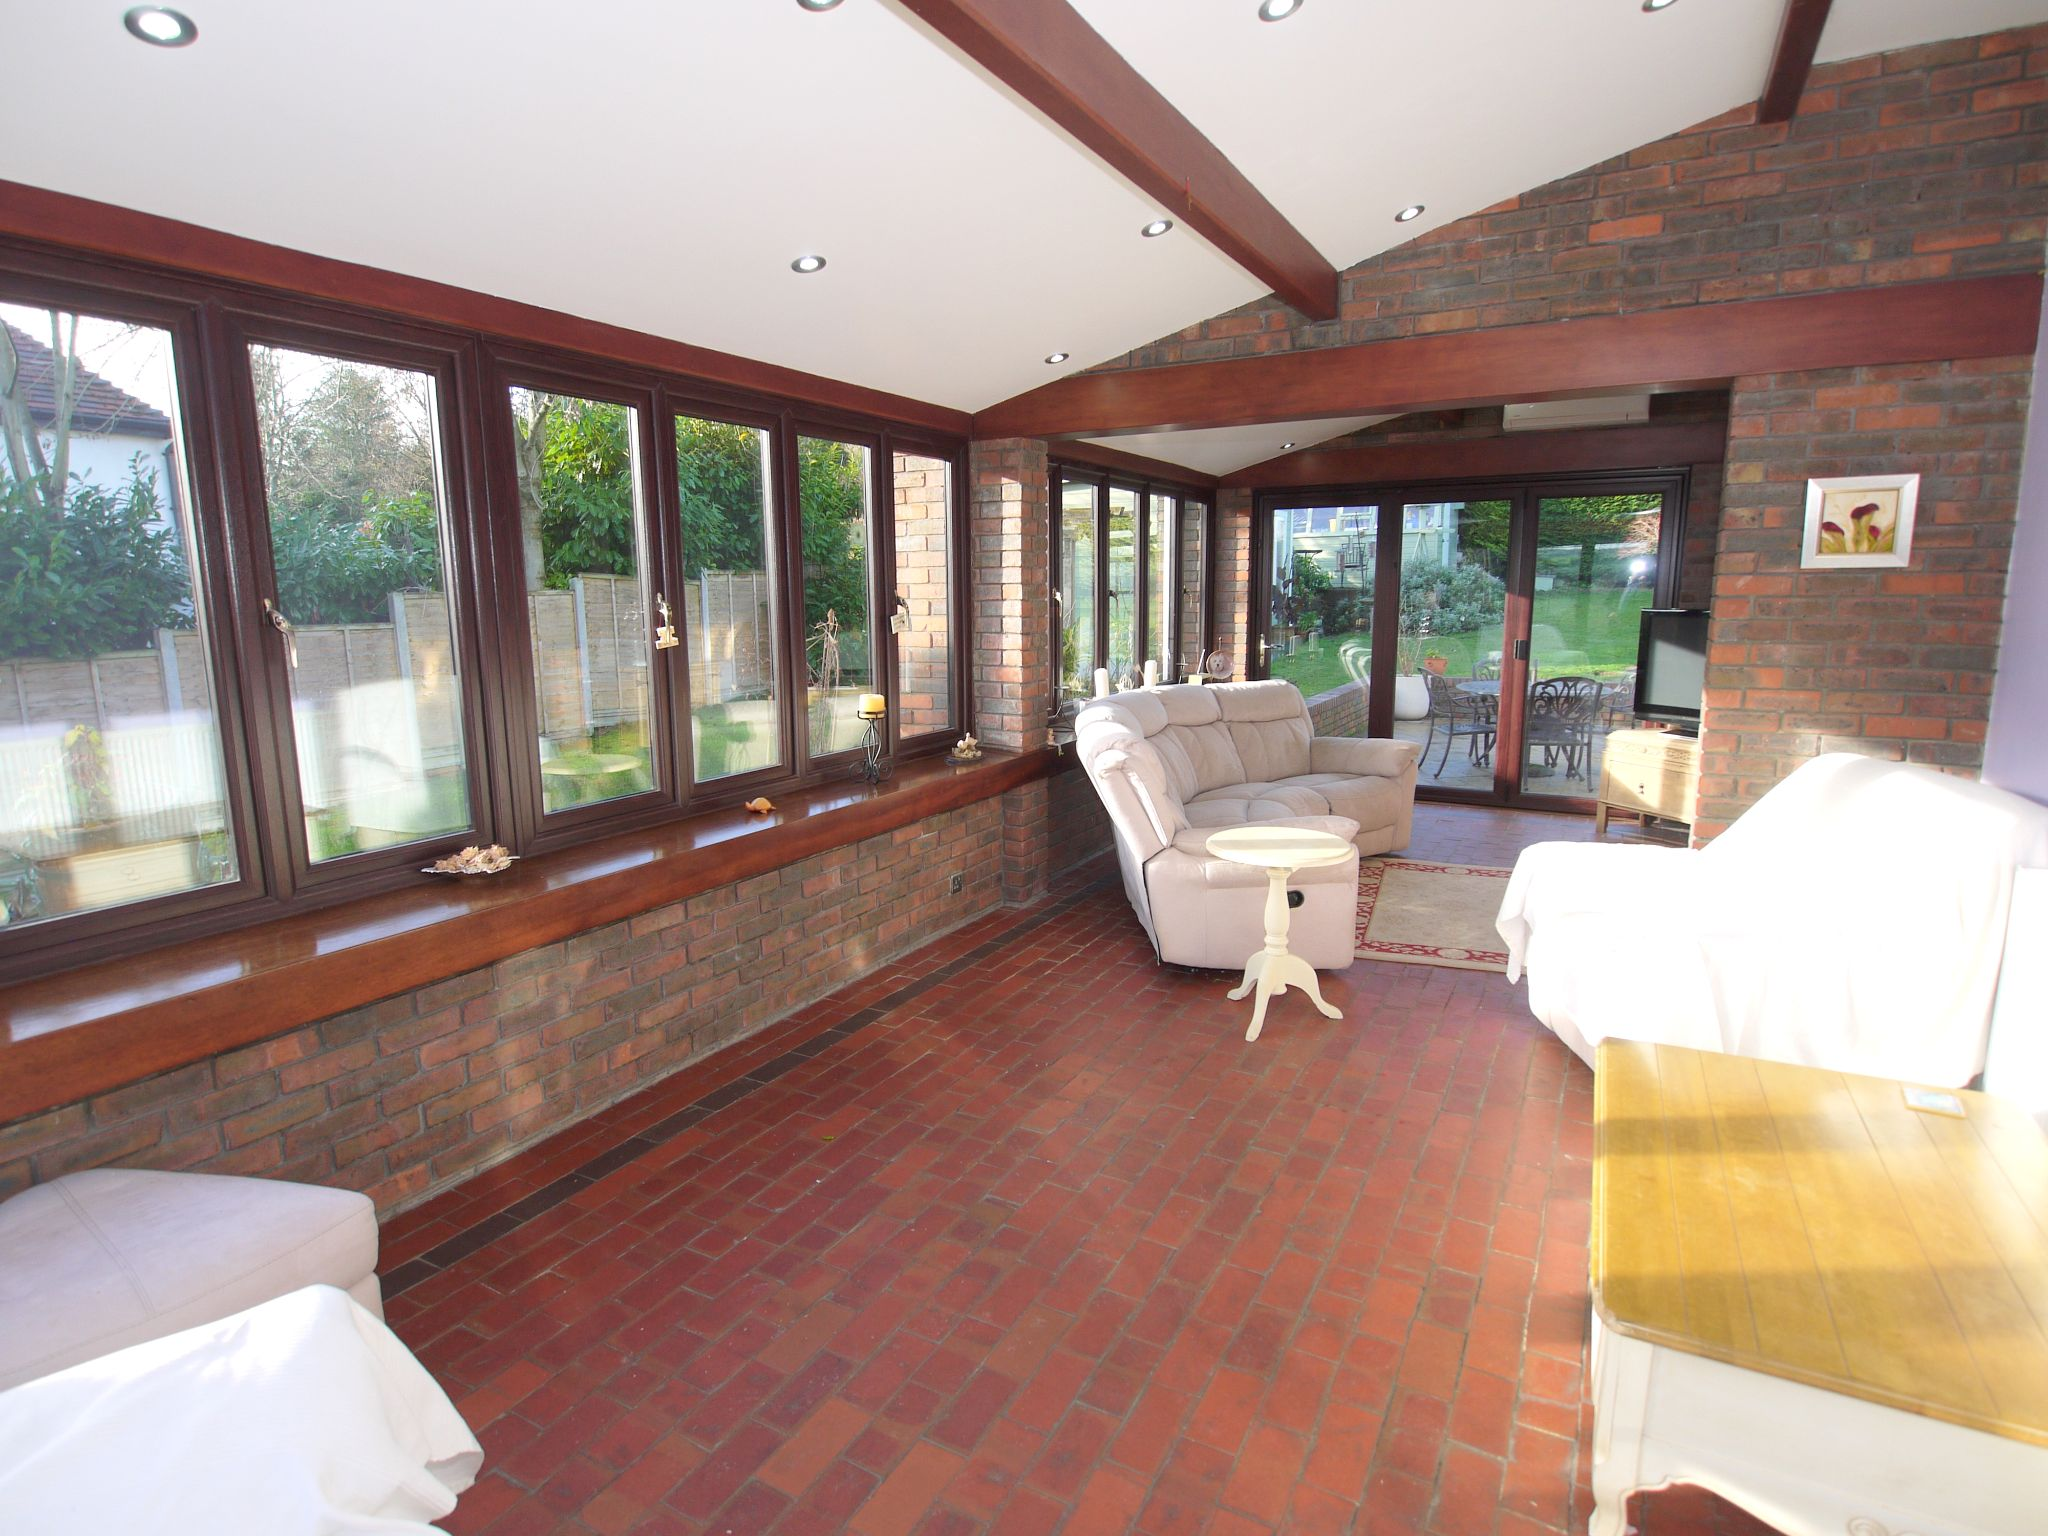 4 bedroom detached house For Sale in Farningham - Photograph 5